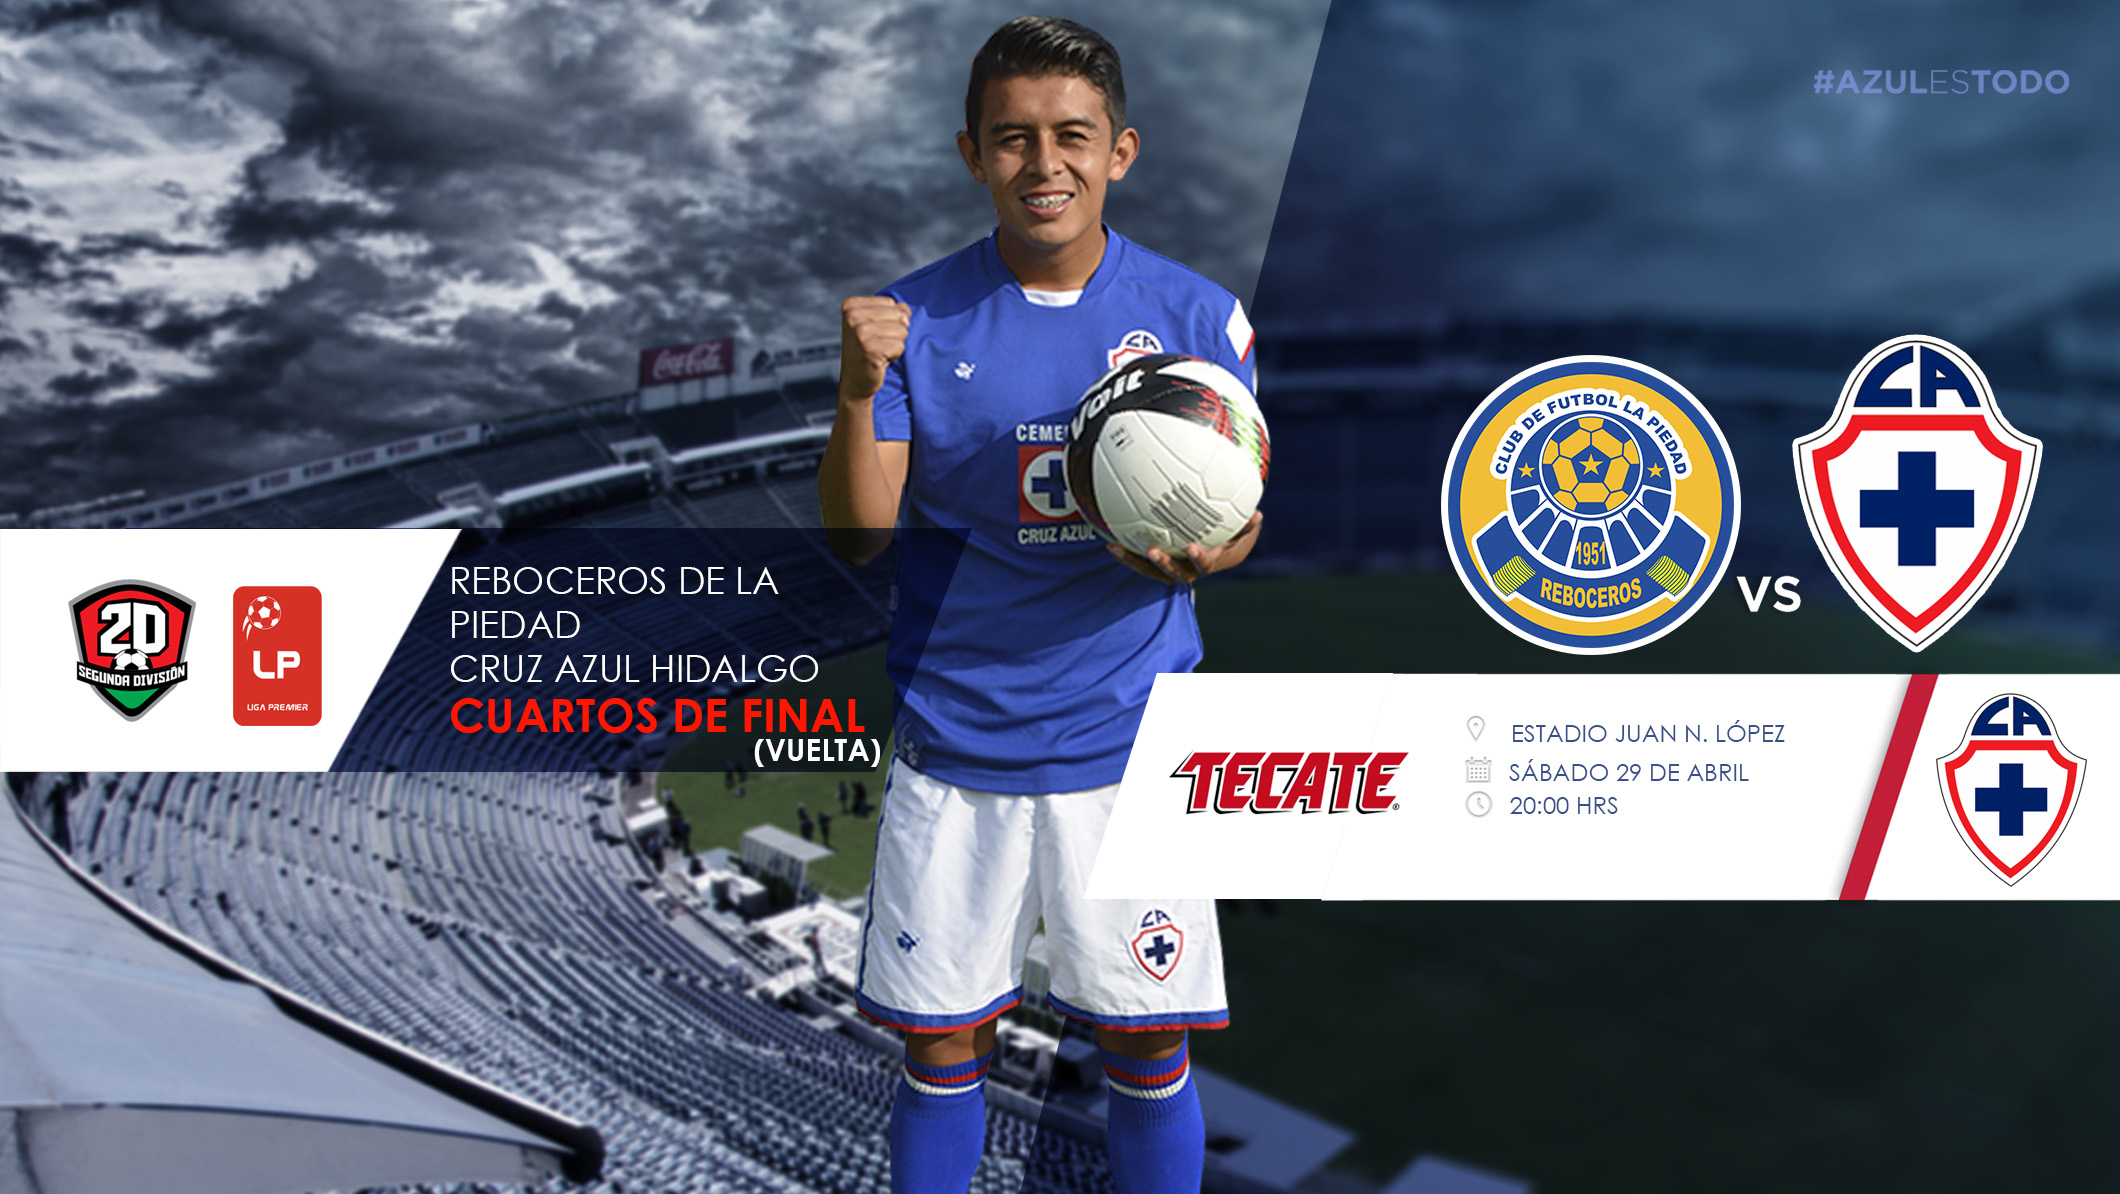 La piedad vs ca hidalgo cruz azul f tbol club for Cuartos de final coac 2017